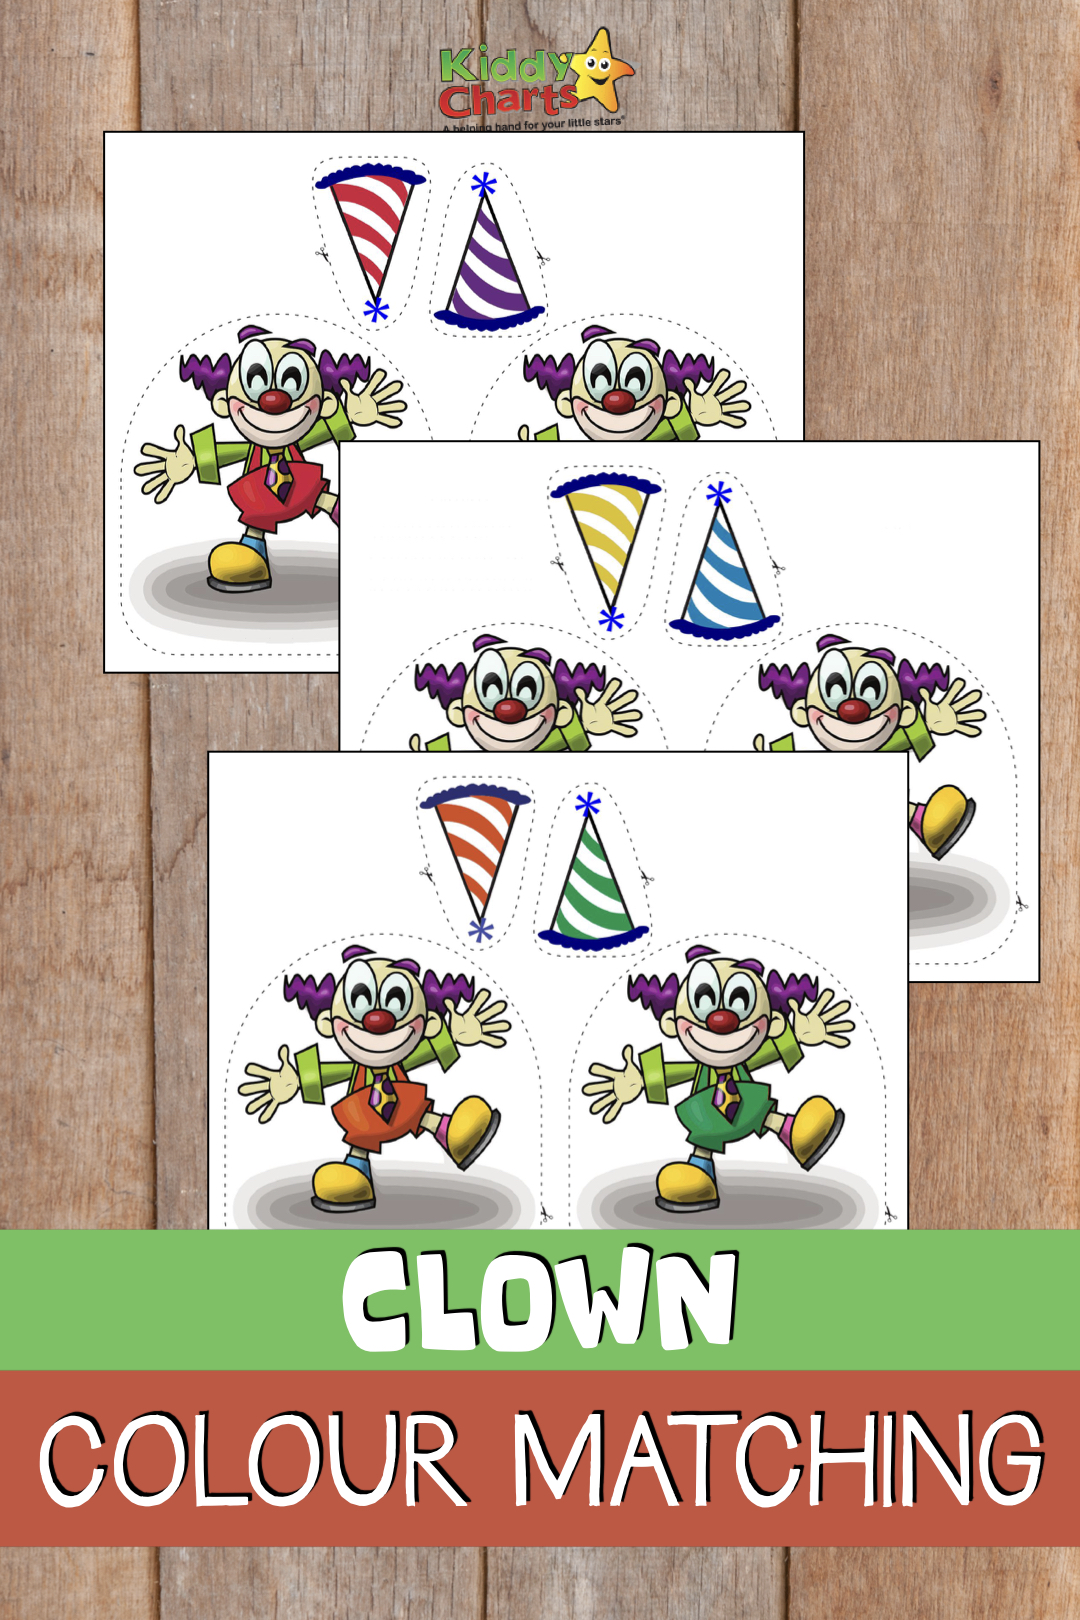 Learning colours: Clown colour matching game